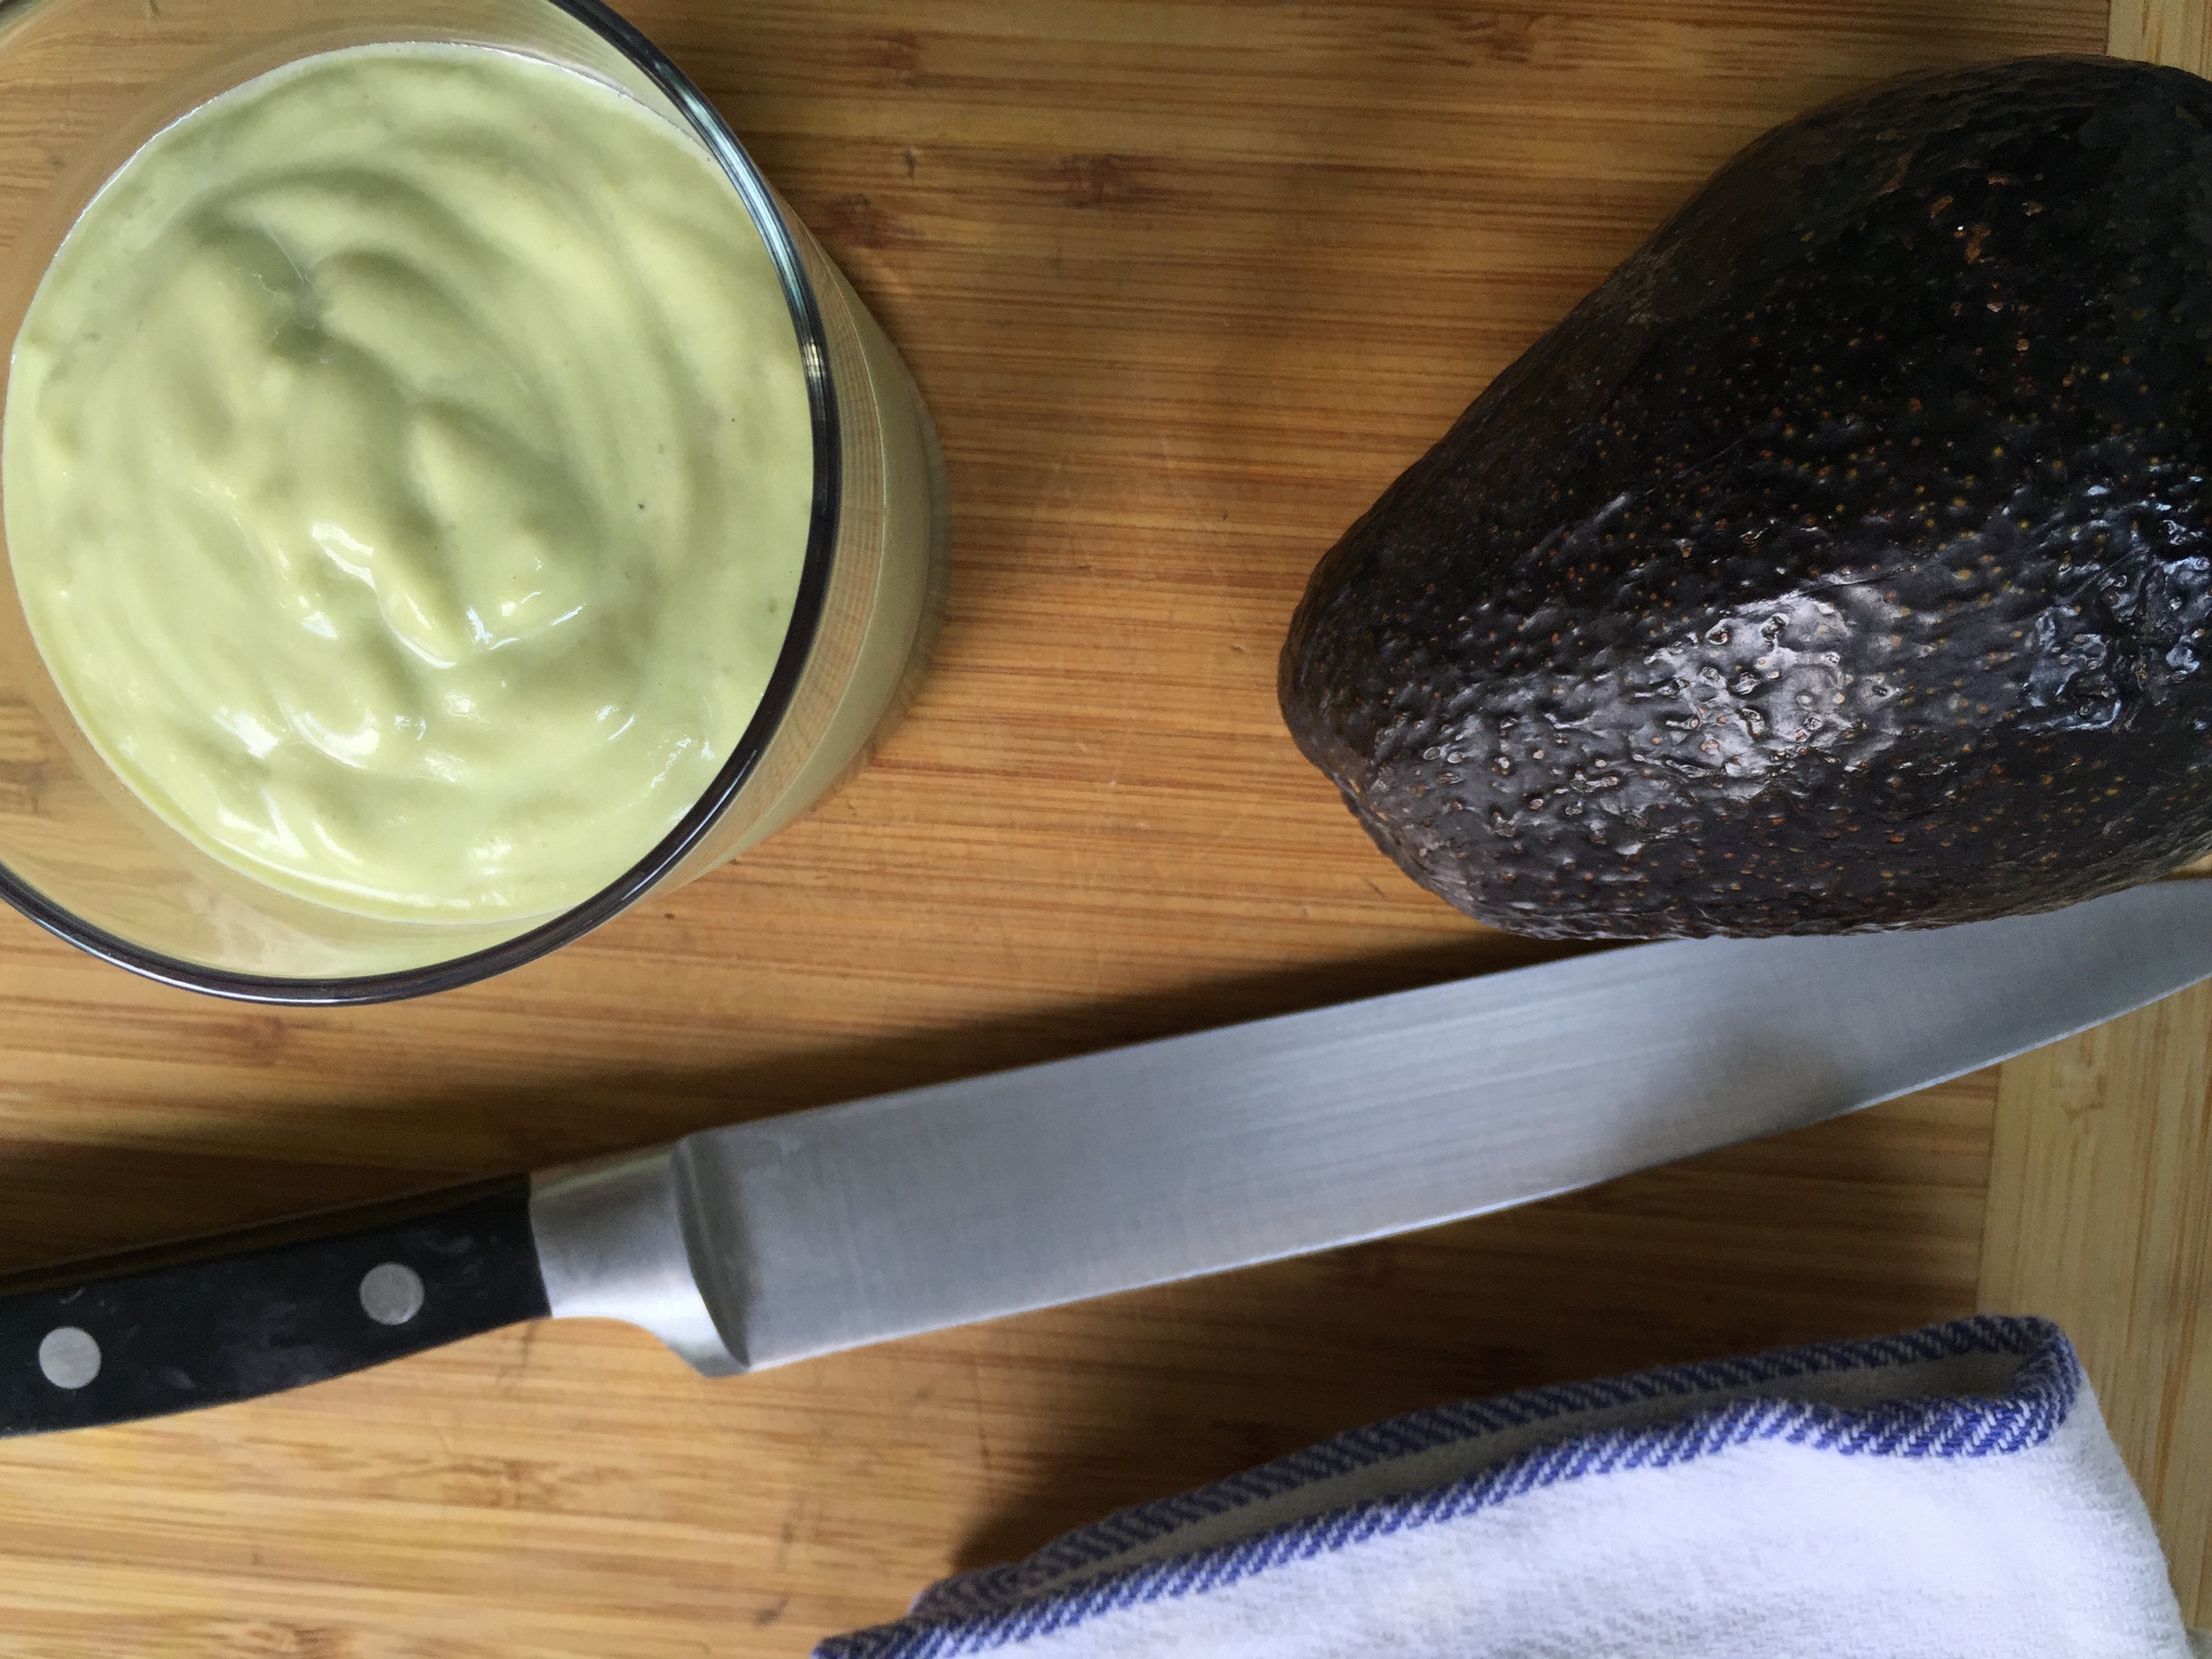 Out of the blender, creamy delicious avocado smoothie